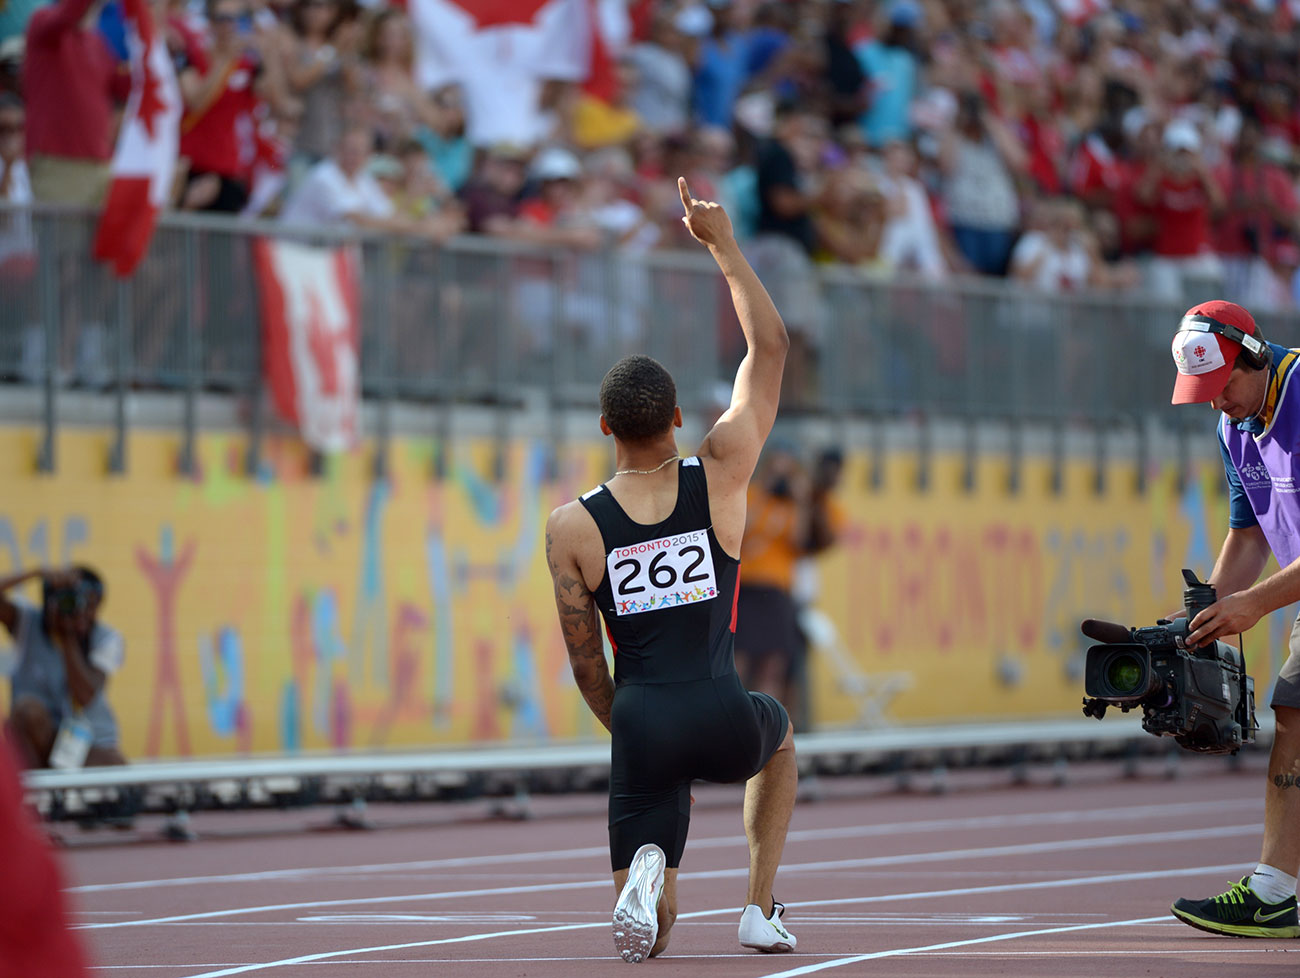 Andre De Grasse celebrates after his 200m Pan Am Games win in Toronto on July 24, 2015.